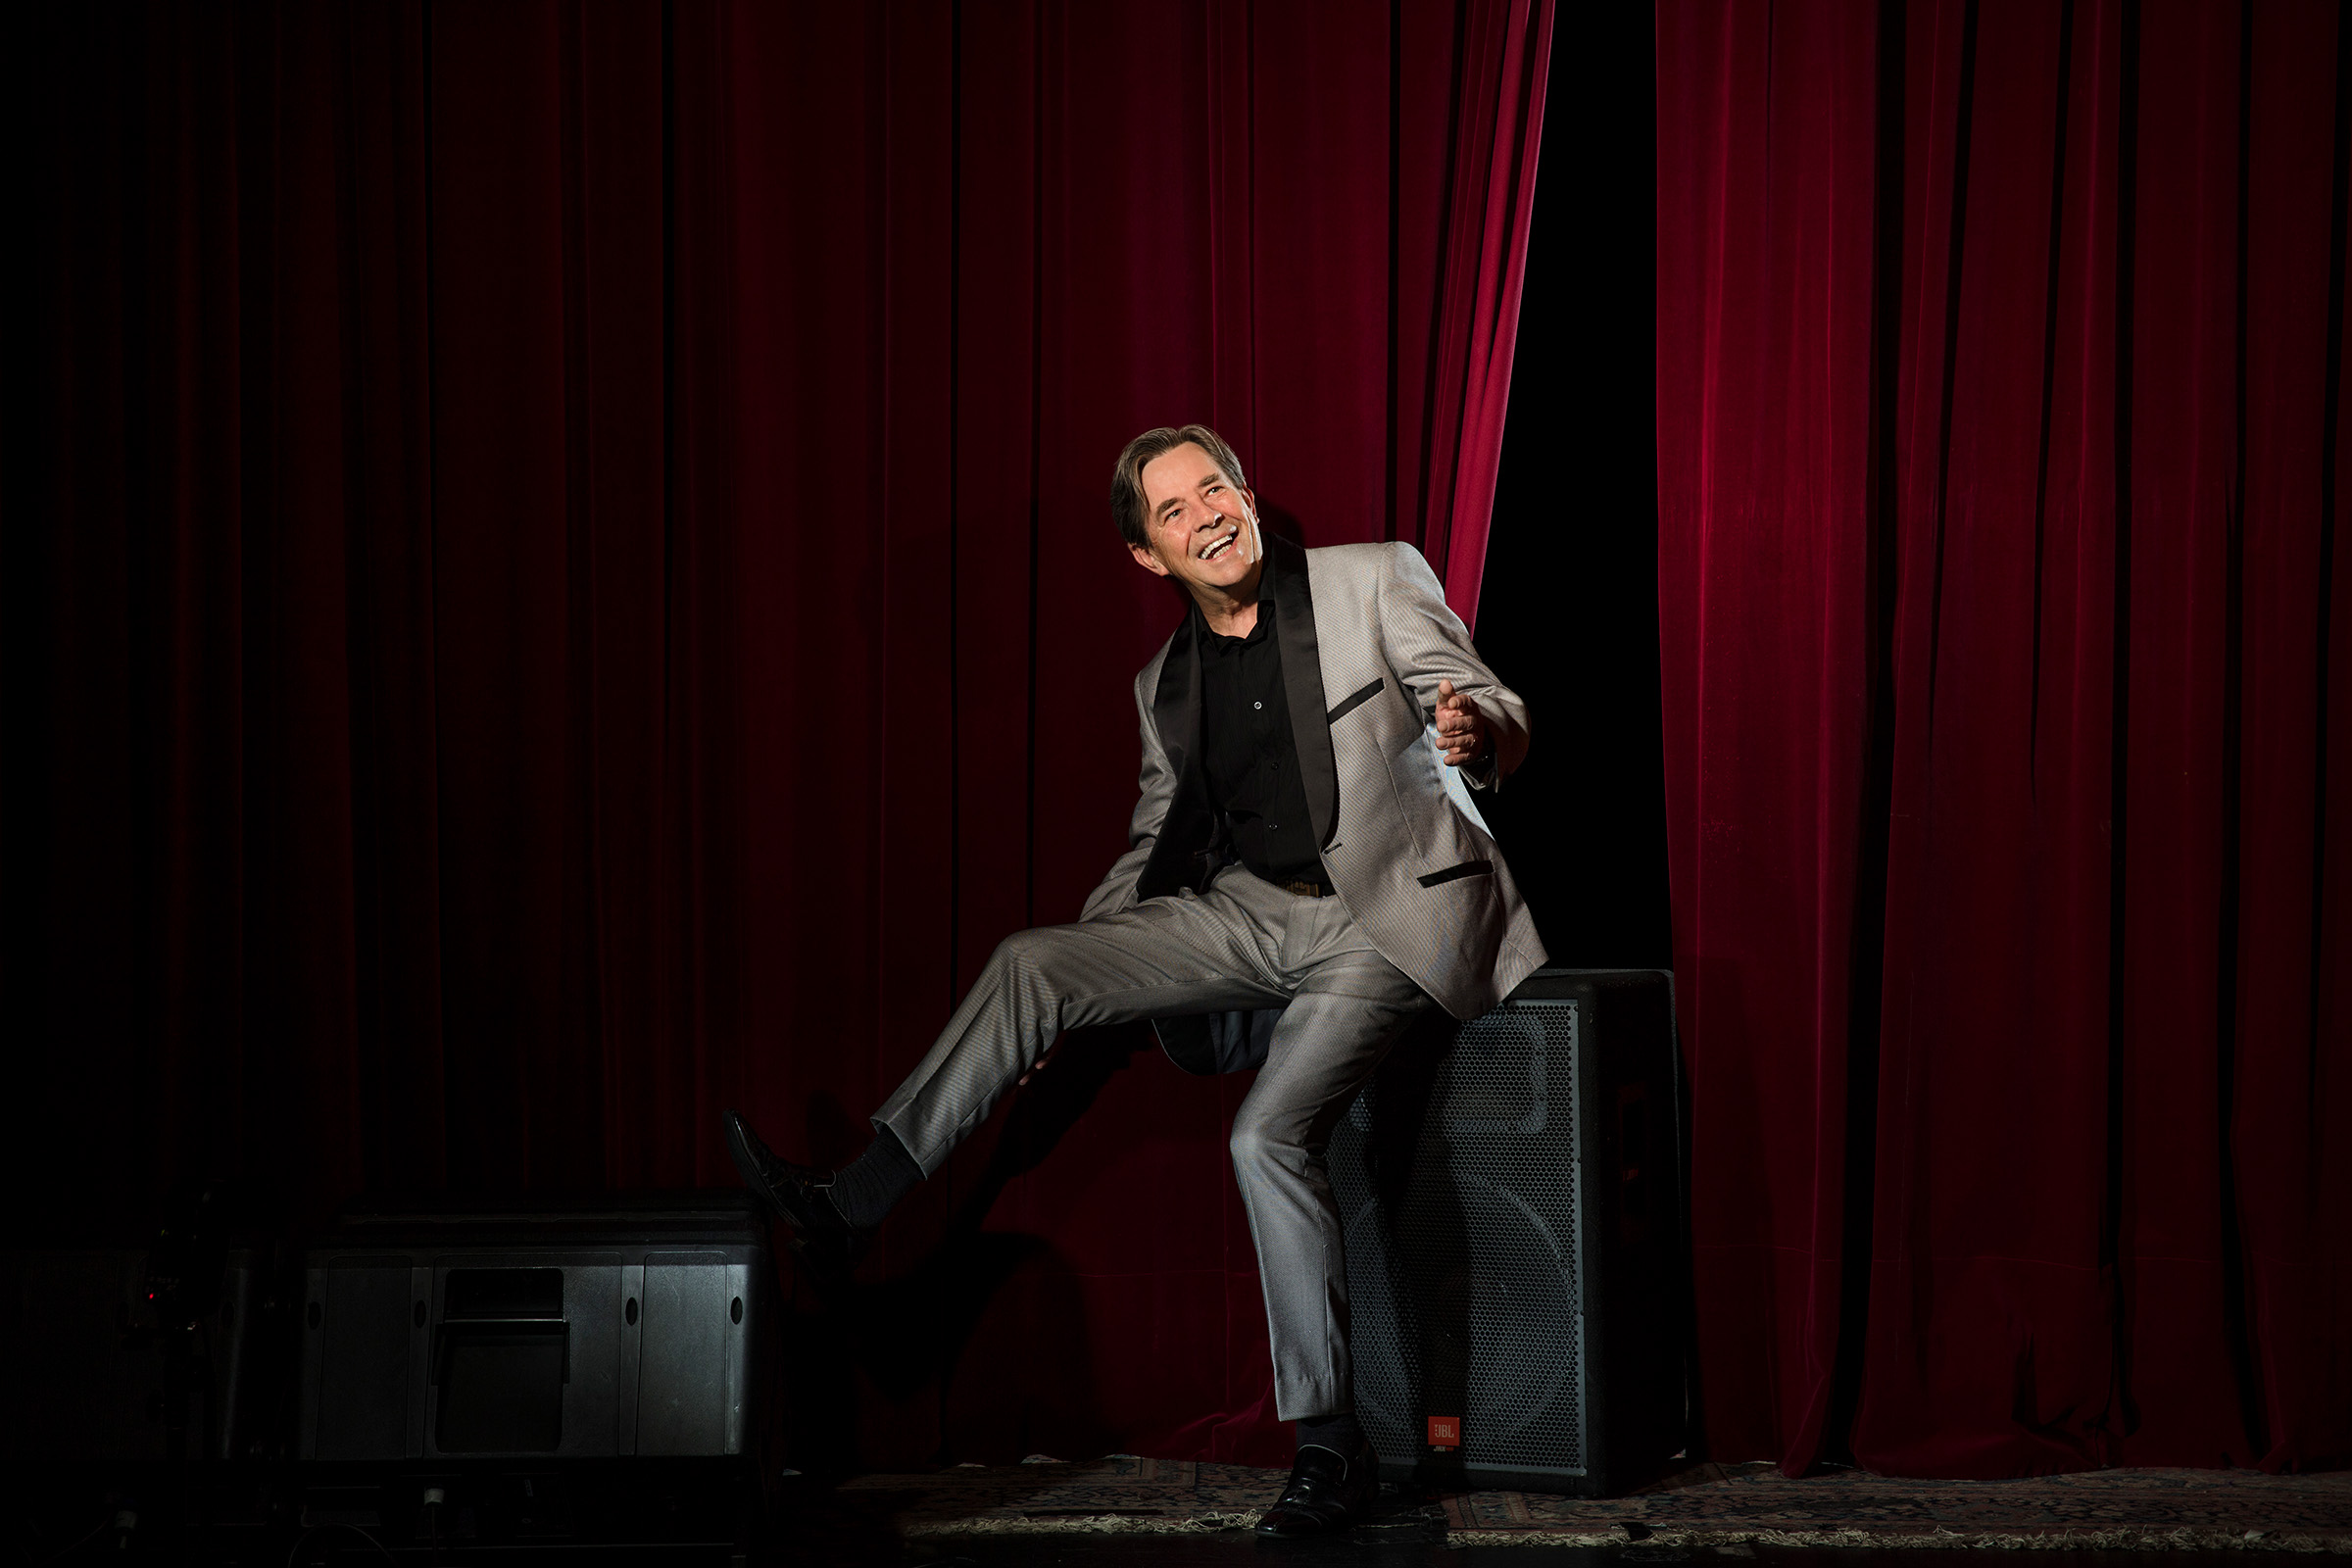 Editorial location photography of Australian singer John Paul Young love is in the air on stage grey black suit